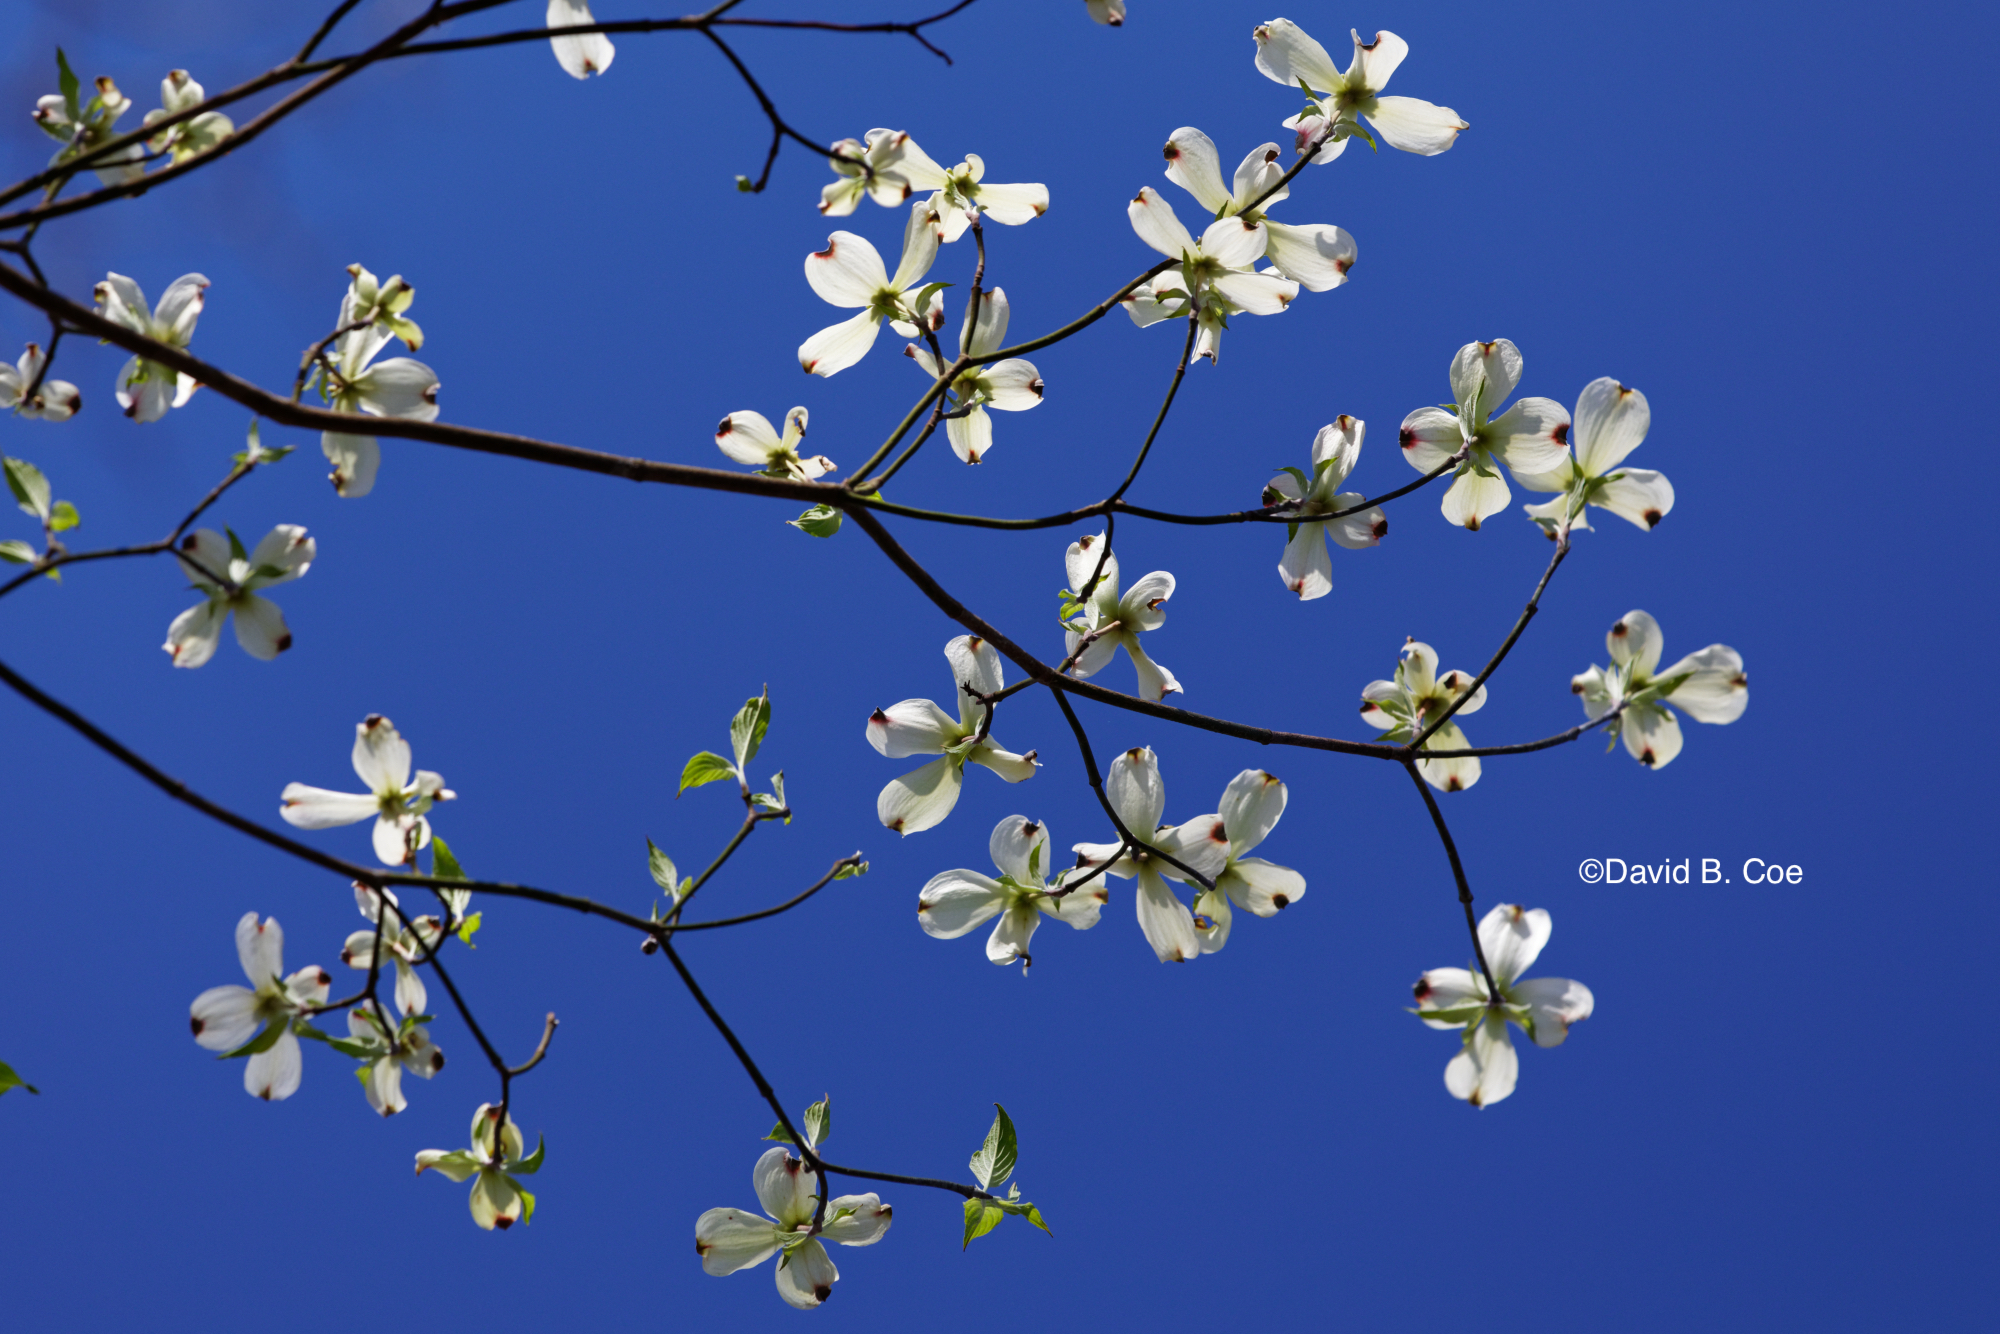 White Dogwood on Blue, by David B. Coe